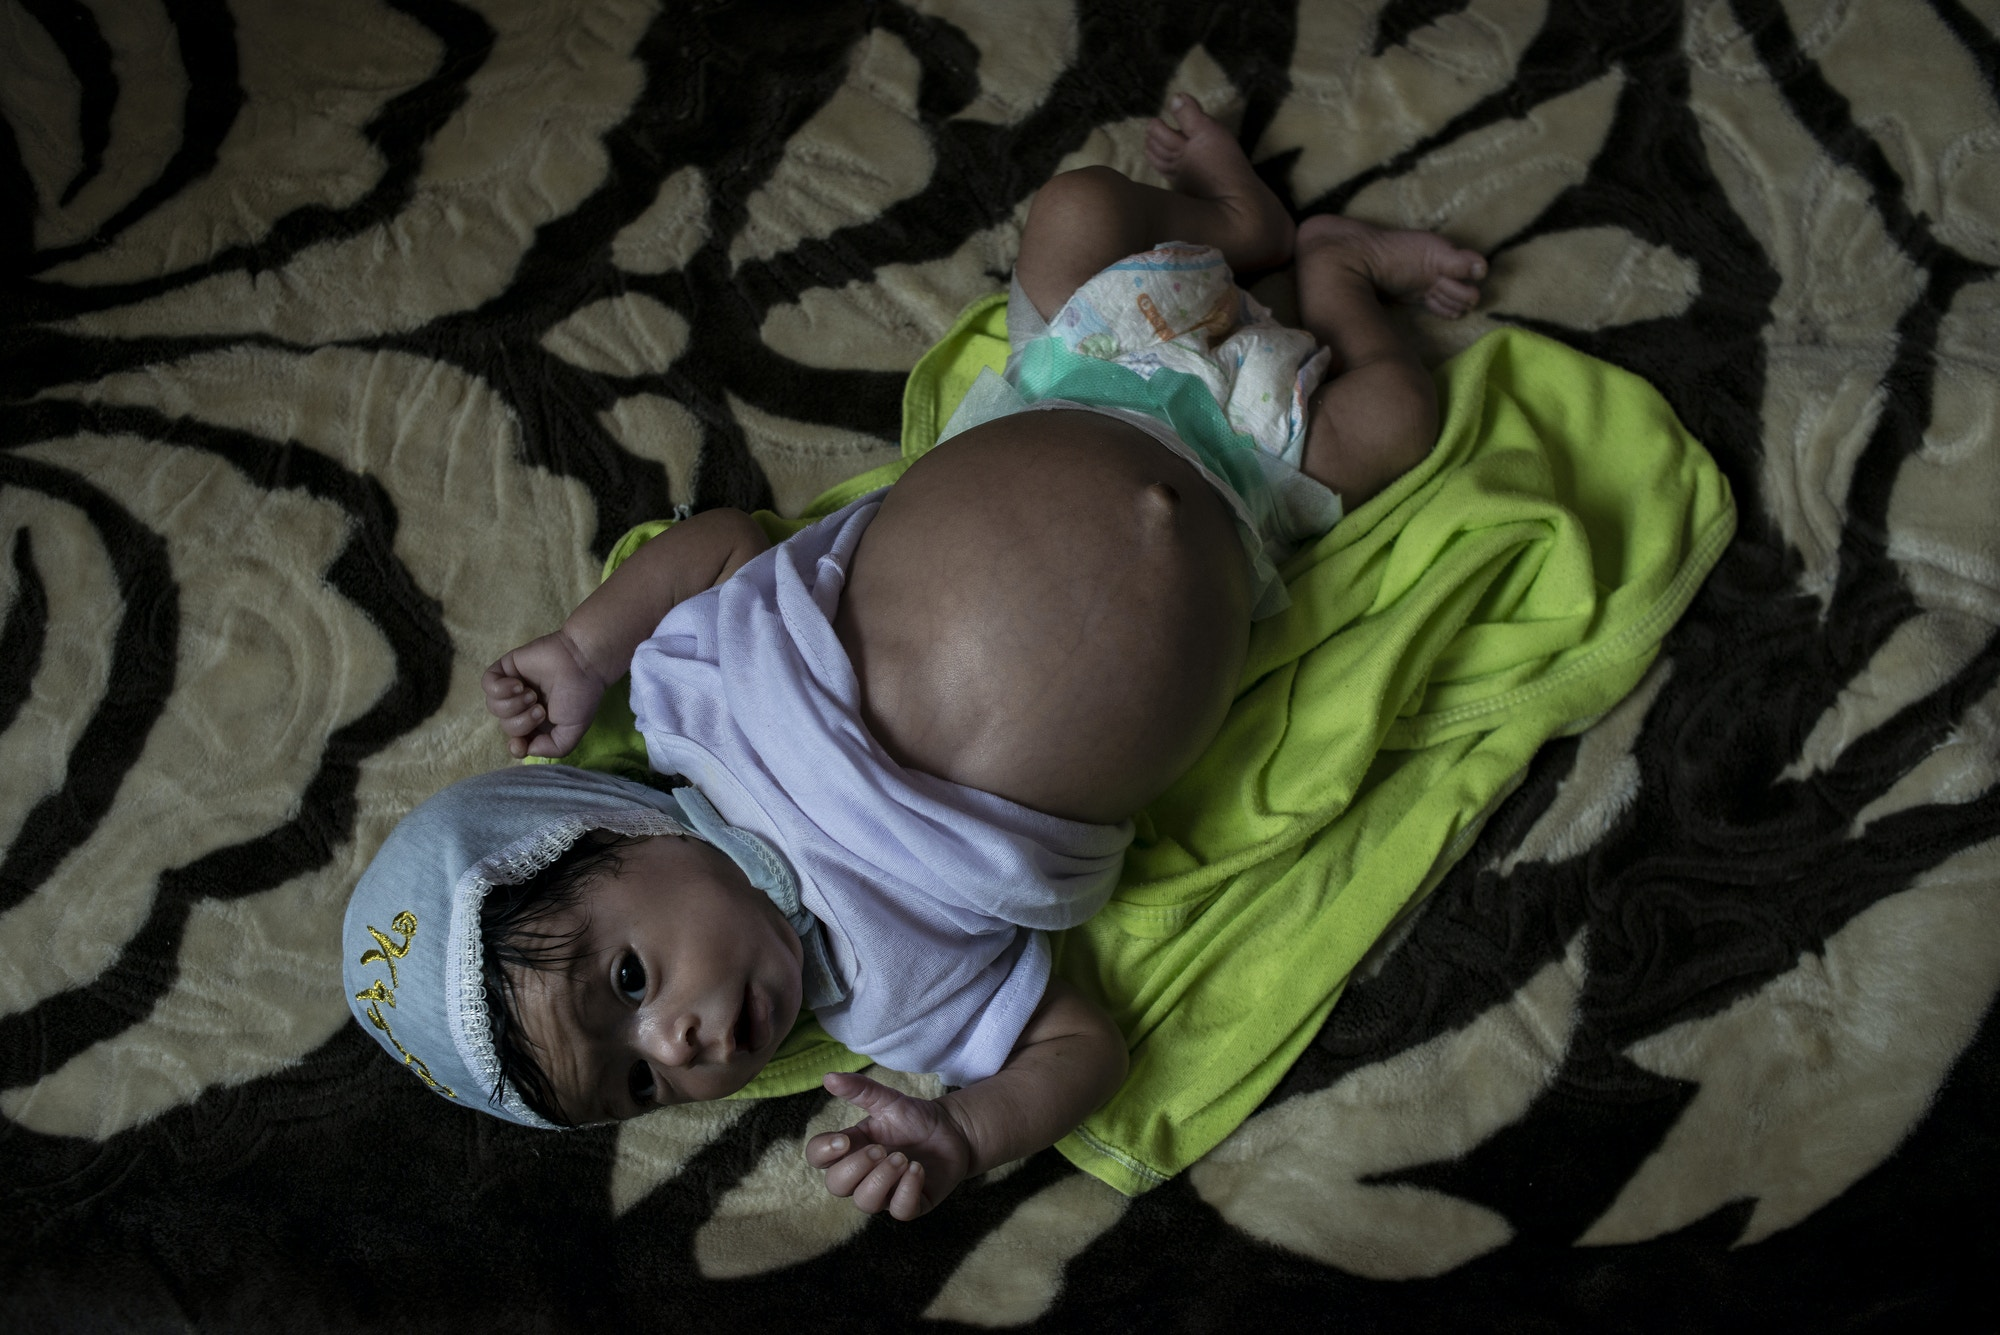 Bushra, 9 months old, lays on a bed with a belly bloated from electrolyte imbalance and malnutrition on May 4, 2018 at Sabaeen Hospital in Sana'a, Yemen.